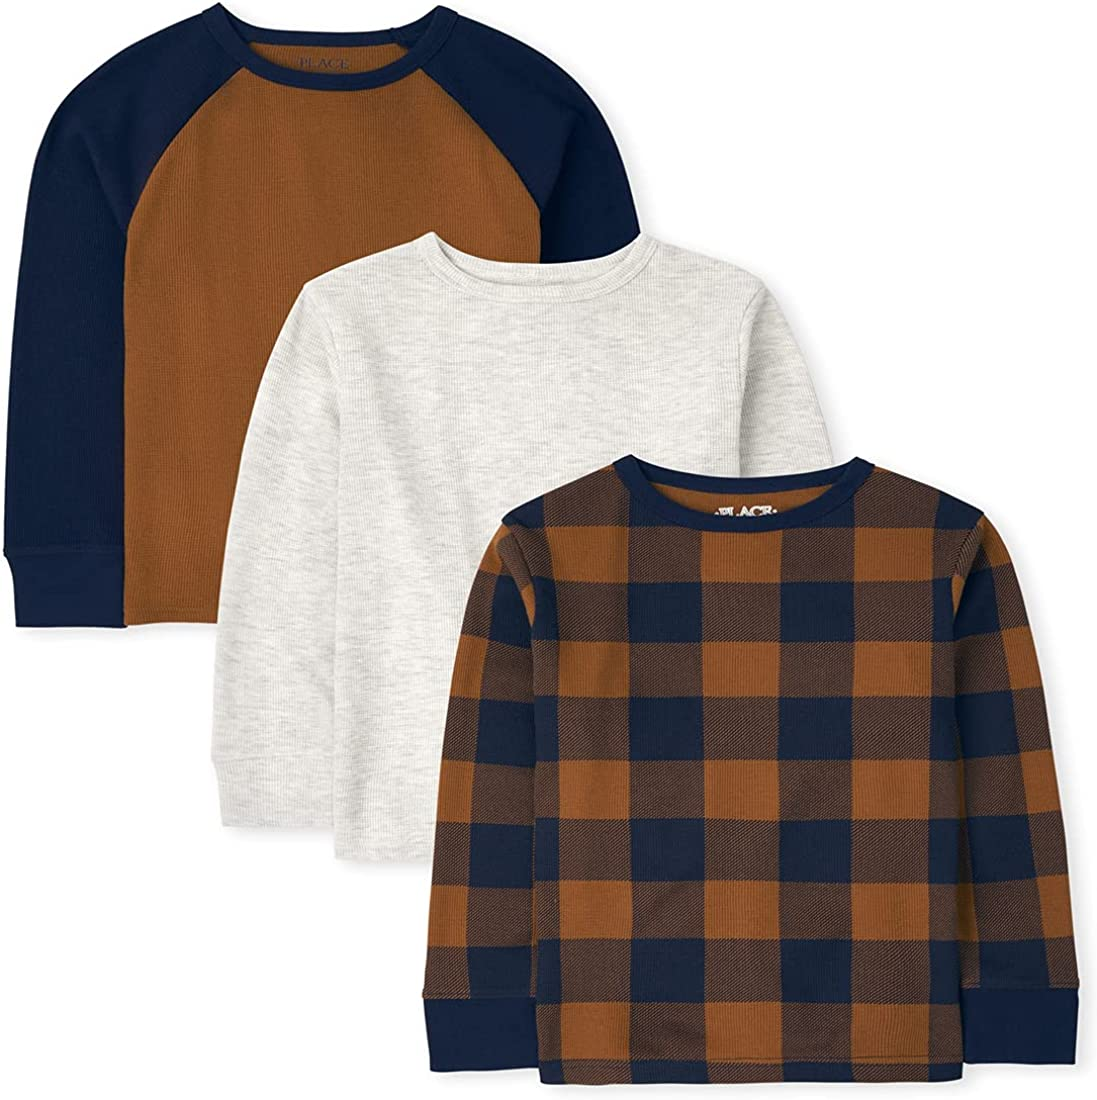 The Children's Place Boys' Long Sleeve Solid Plaid and Raglan Thermal Top 3-Pack